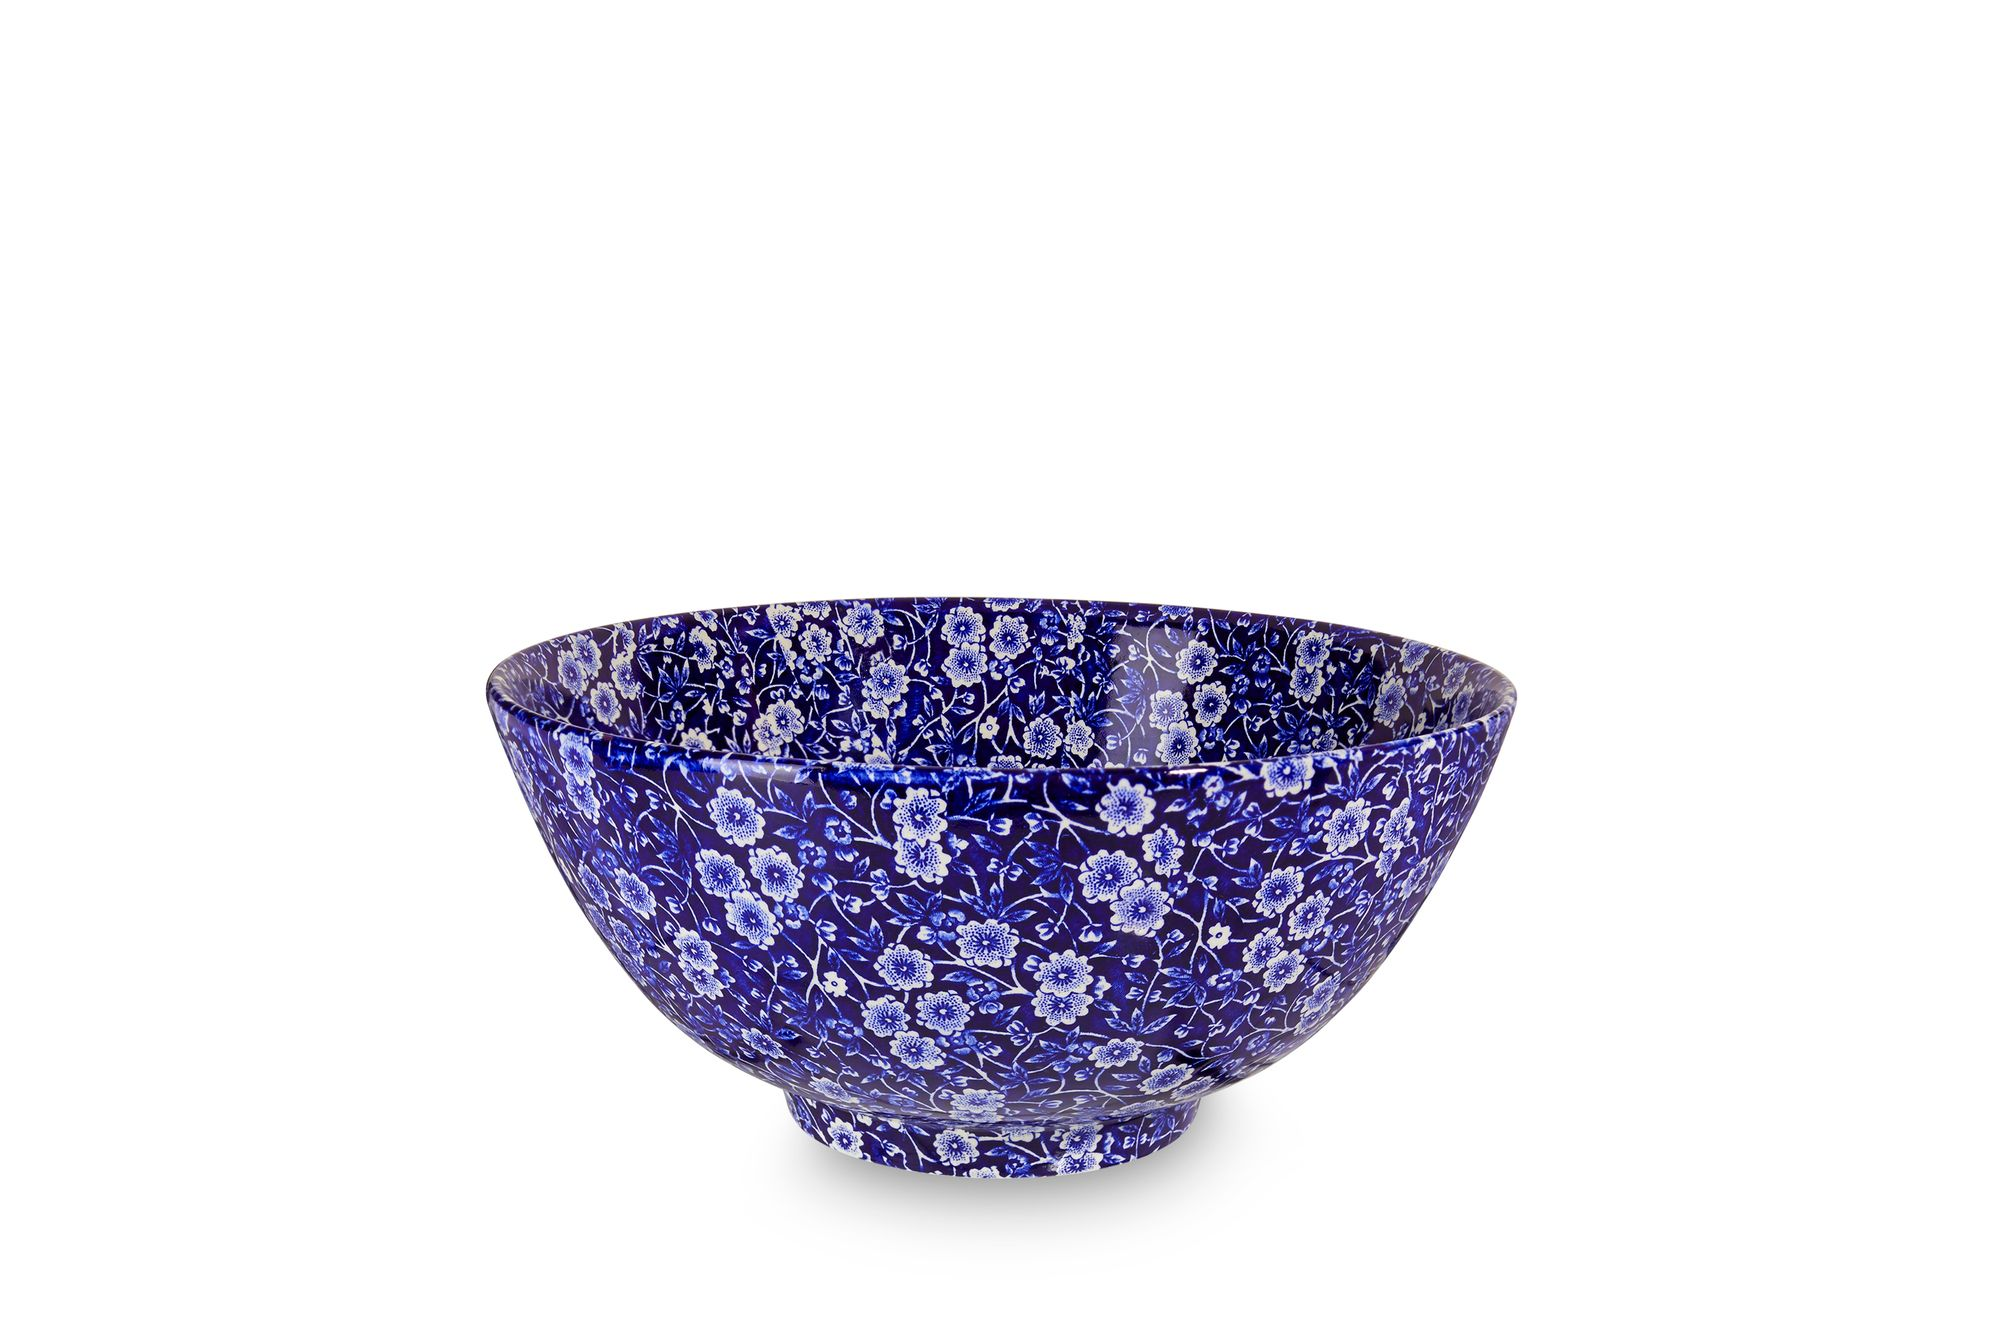 Burleigh Blue Calico Large Footed Bowl thumb 1